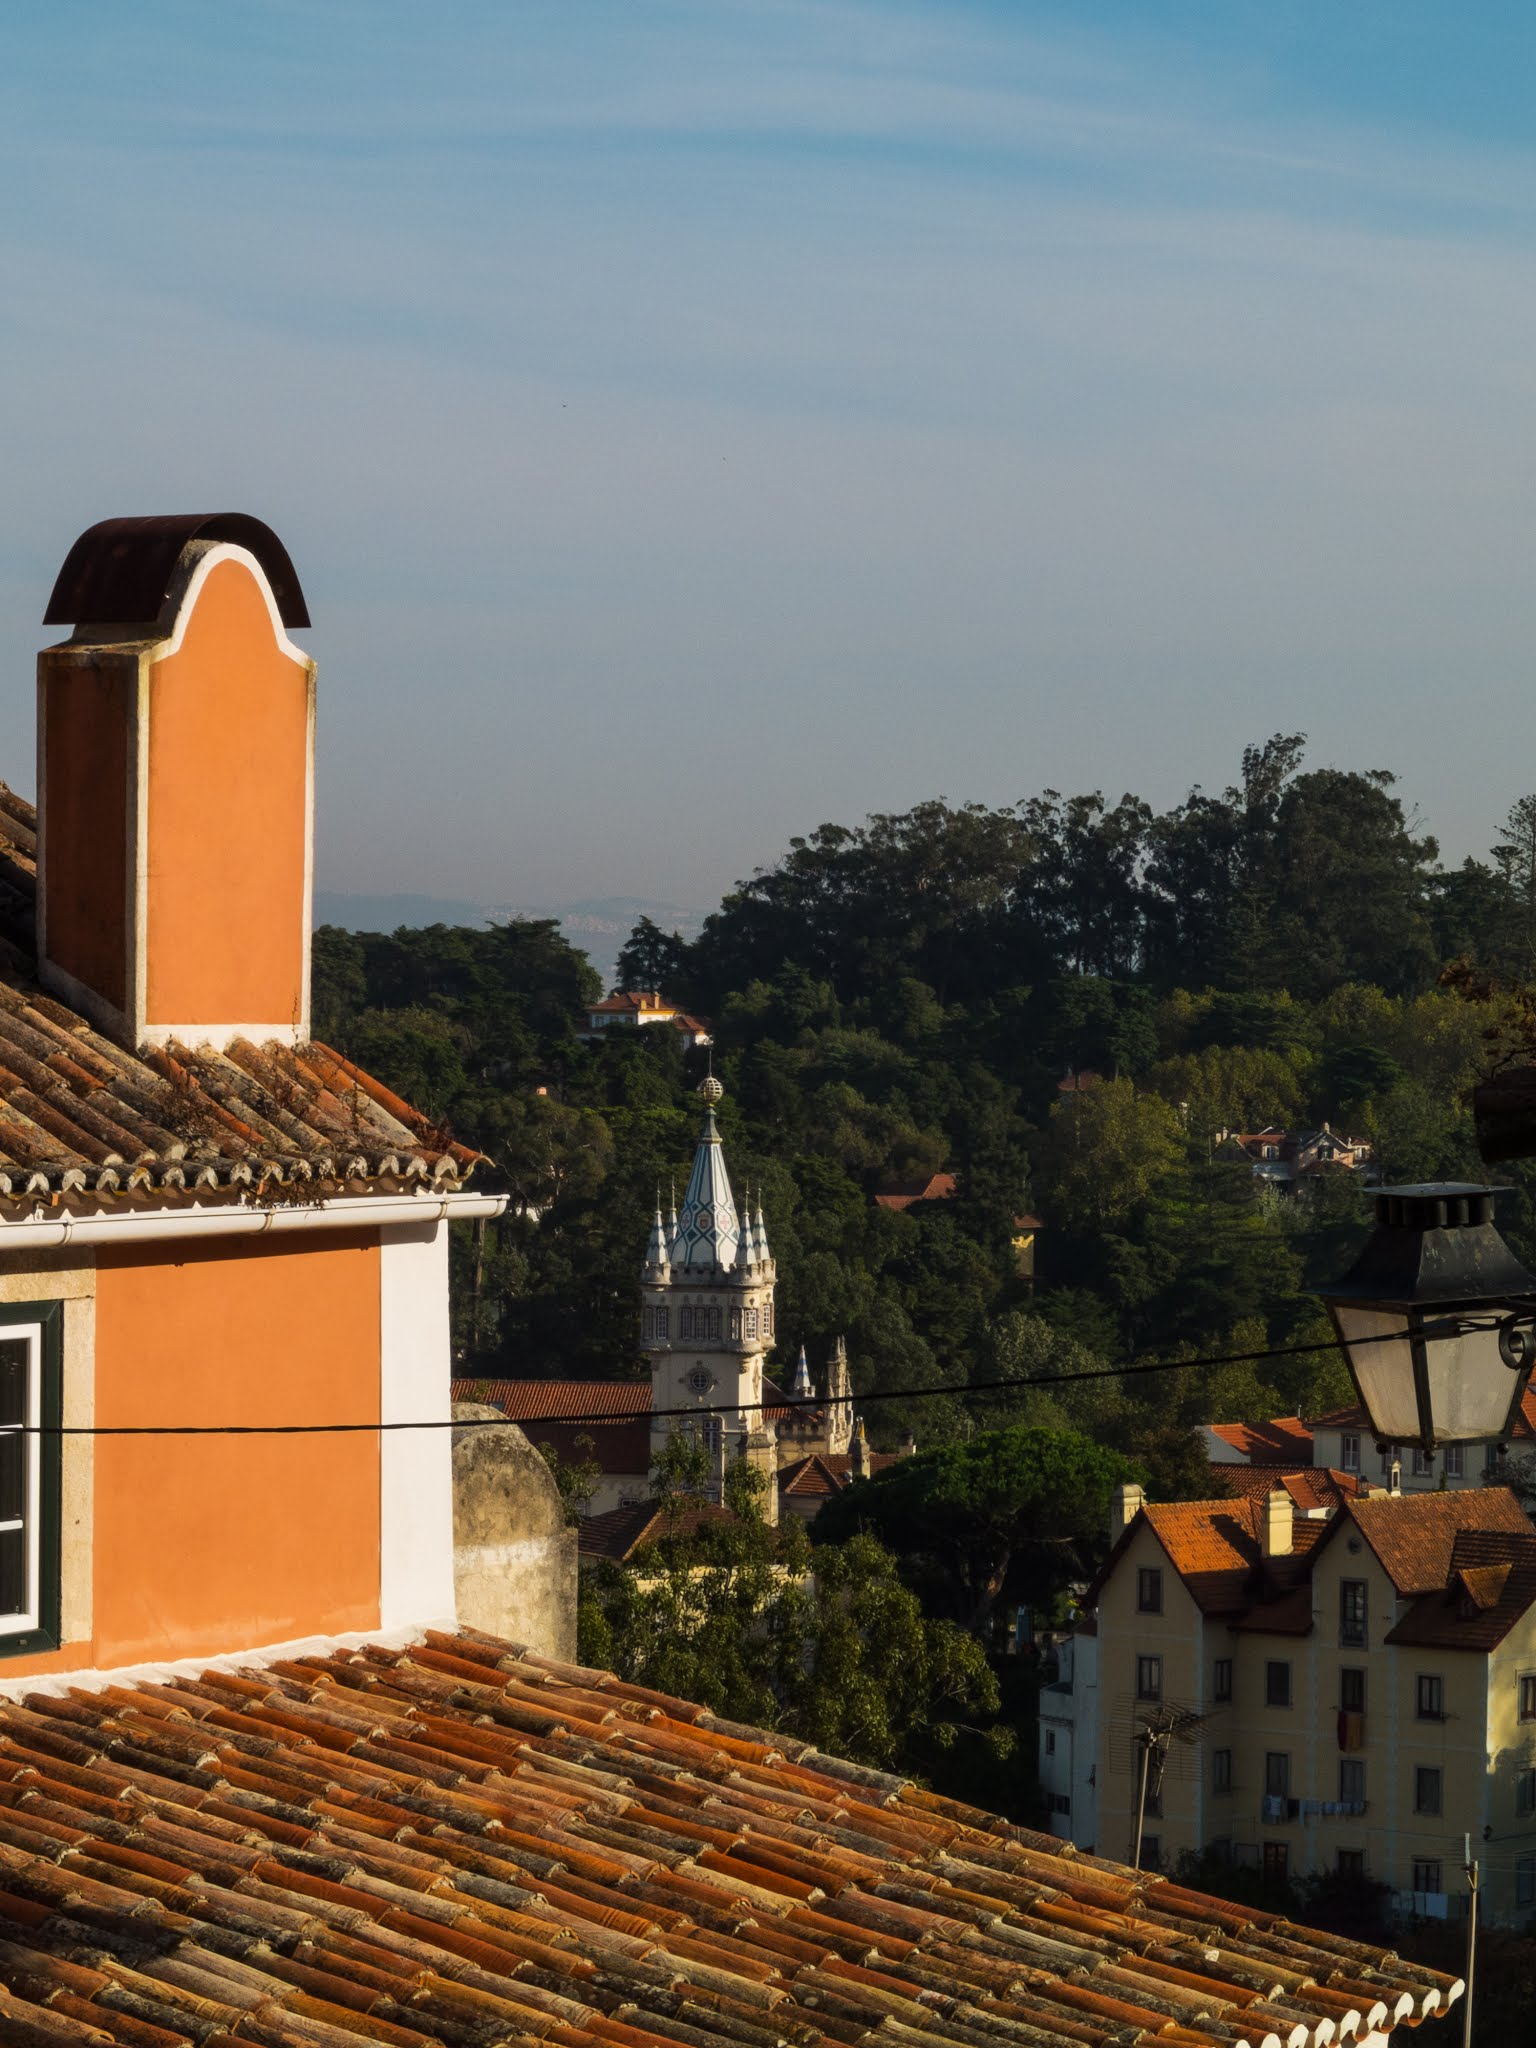 View of Sintra over a close up of a terracotta roof.